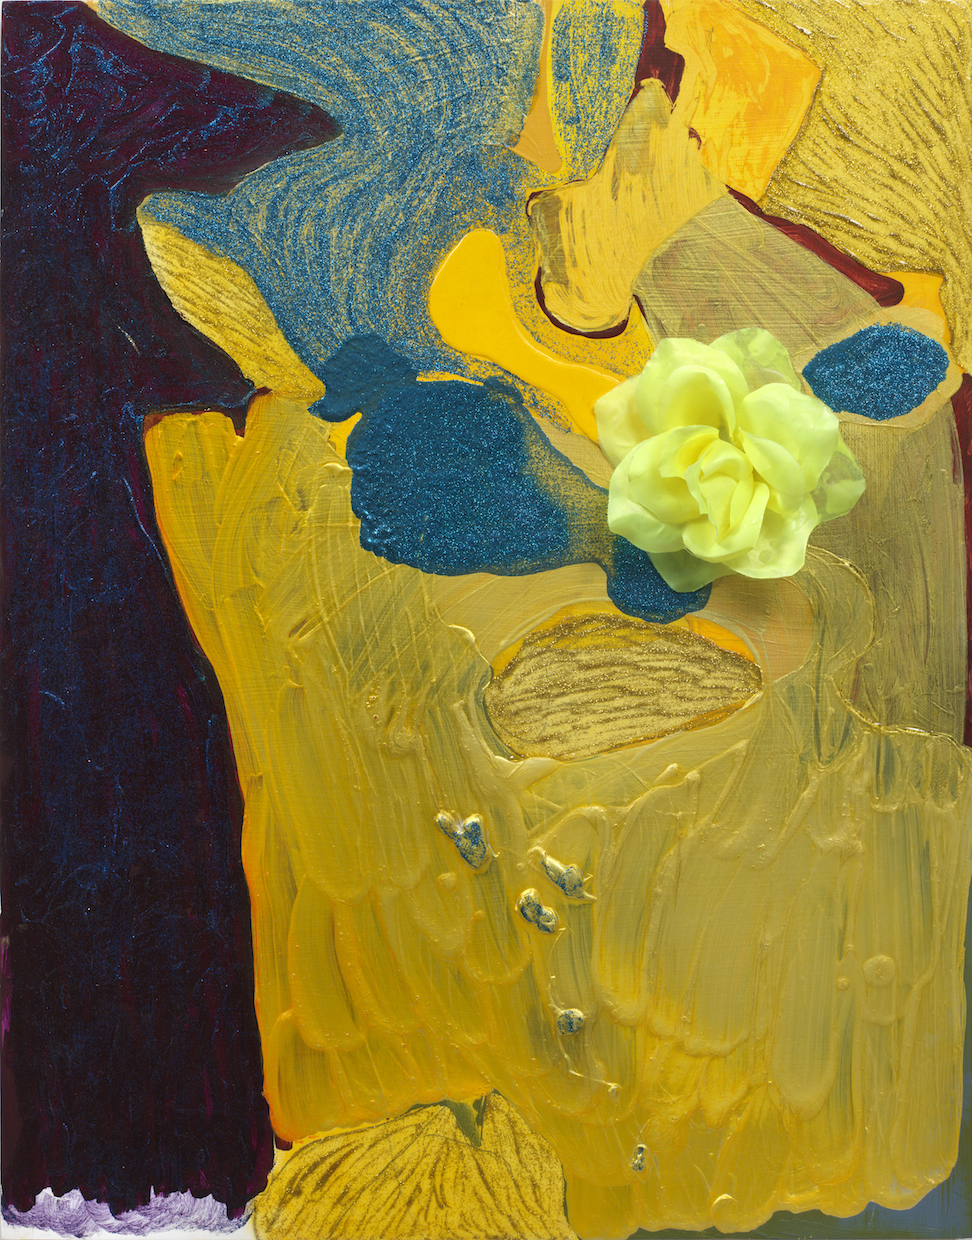 Painting A Life In Bloom | Newcity Art